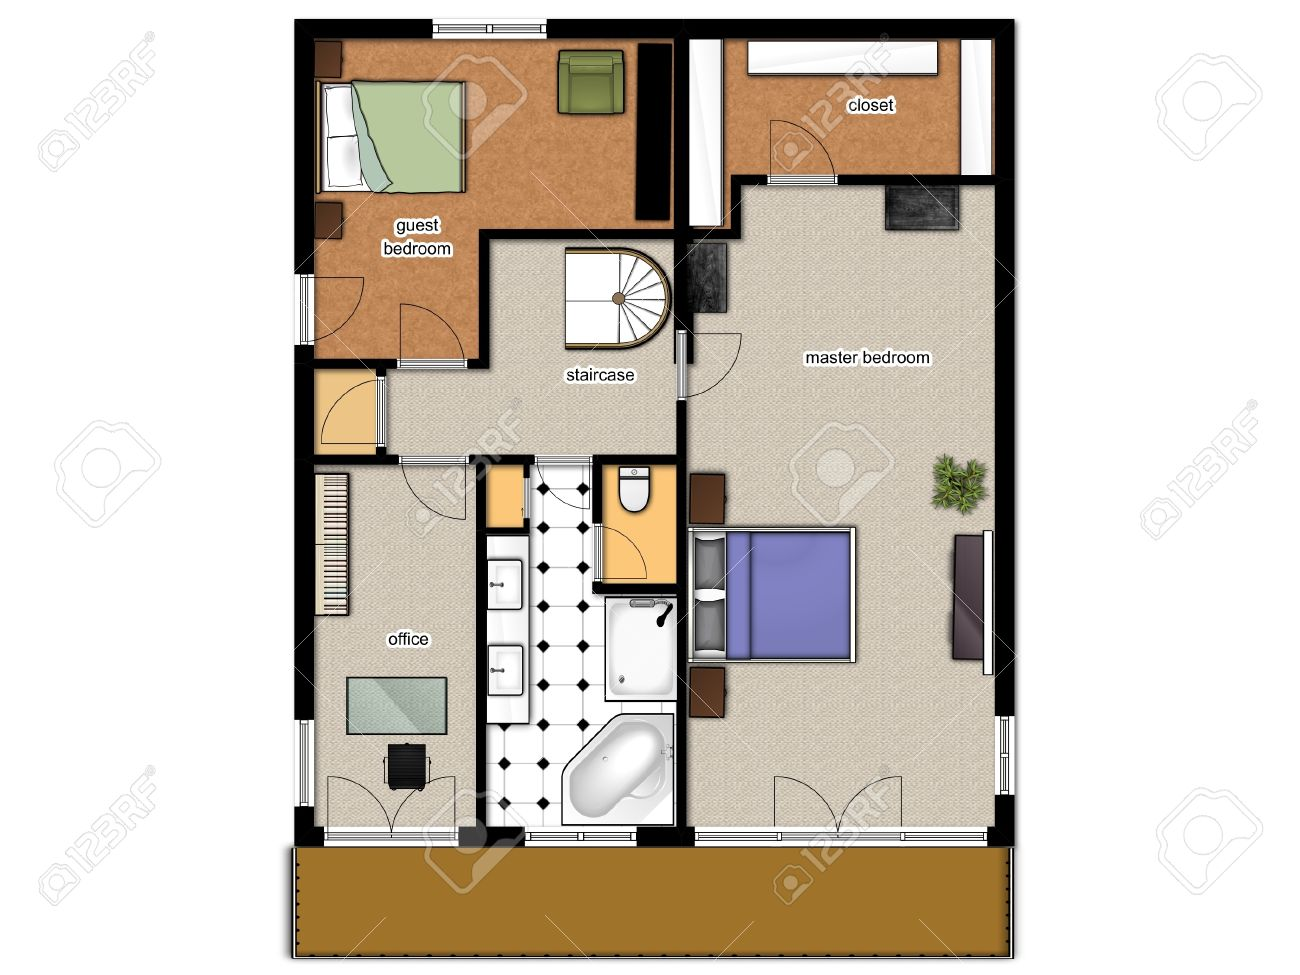 master bedroom with office floor plans. 2D floor plan with bedrooms  office bathroom and closet Stock Photo 14617221 Floor Plan With Bedrooms Office Bathroom And Closet